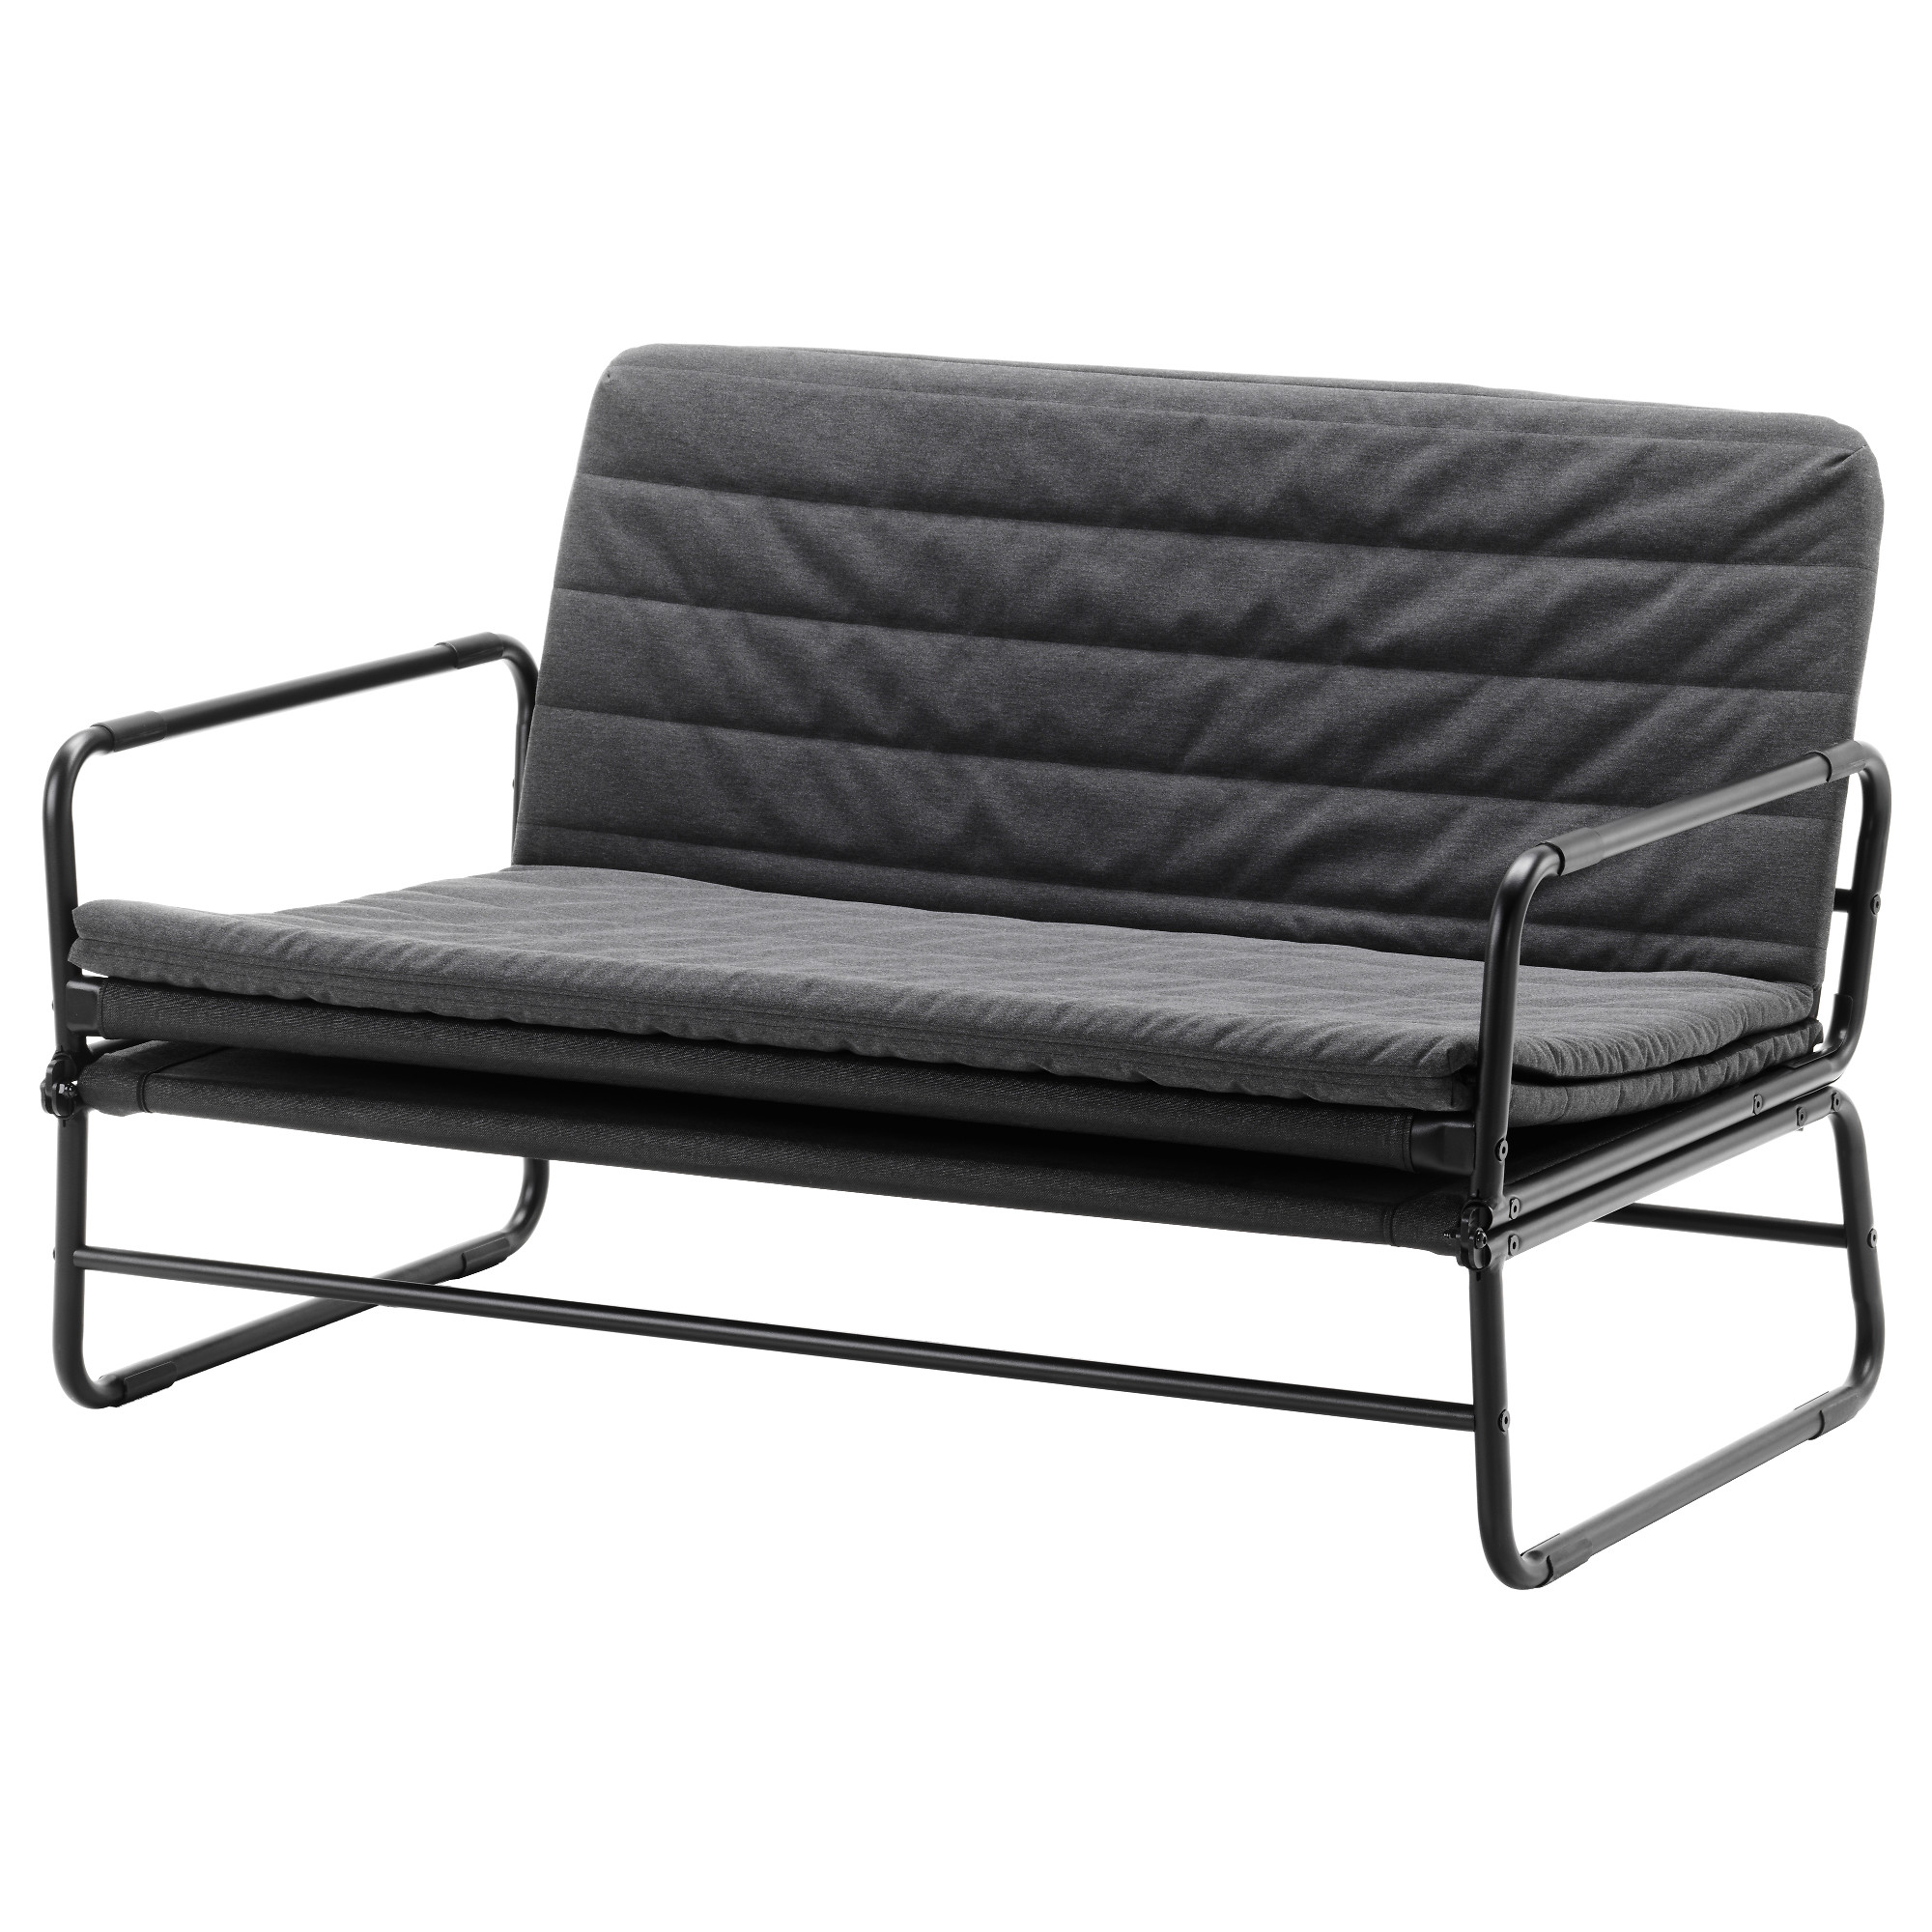 - HAMMARN - Sofa-bed, Knisa Dark Grey/black IKEA Hong Kong